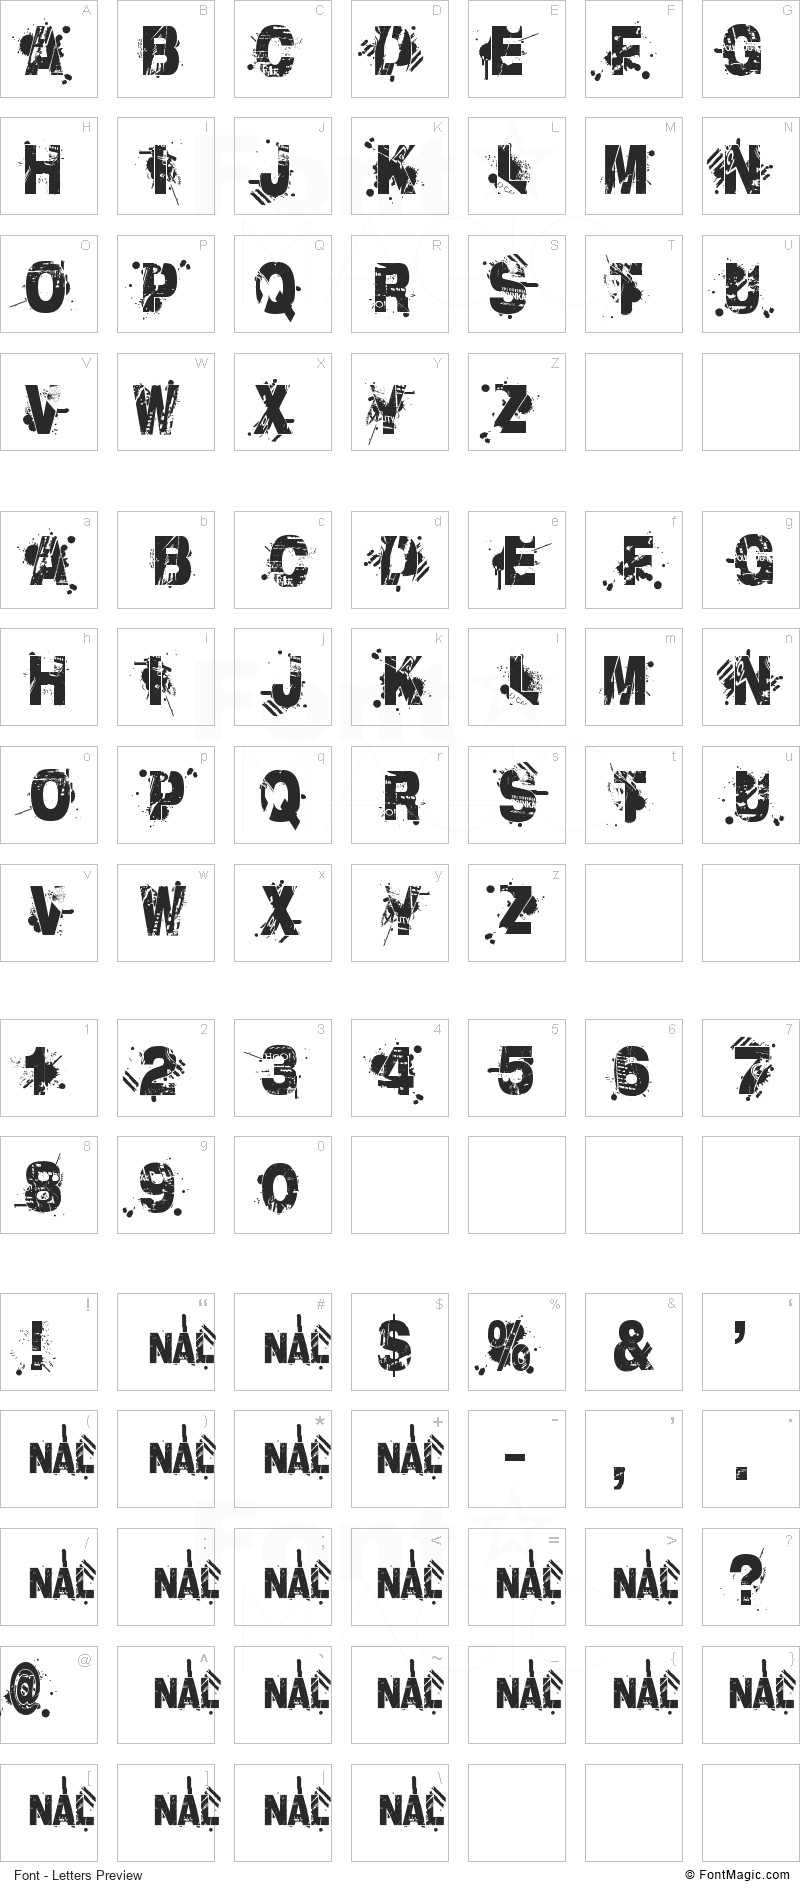 Liberty City Ransom Font - All Latters Preview Chart